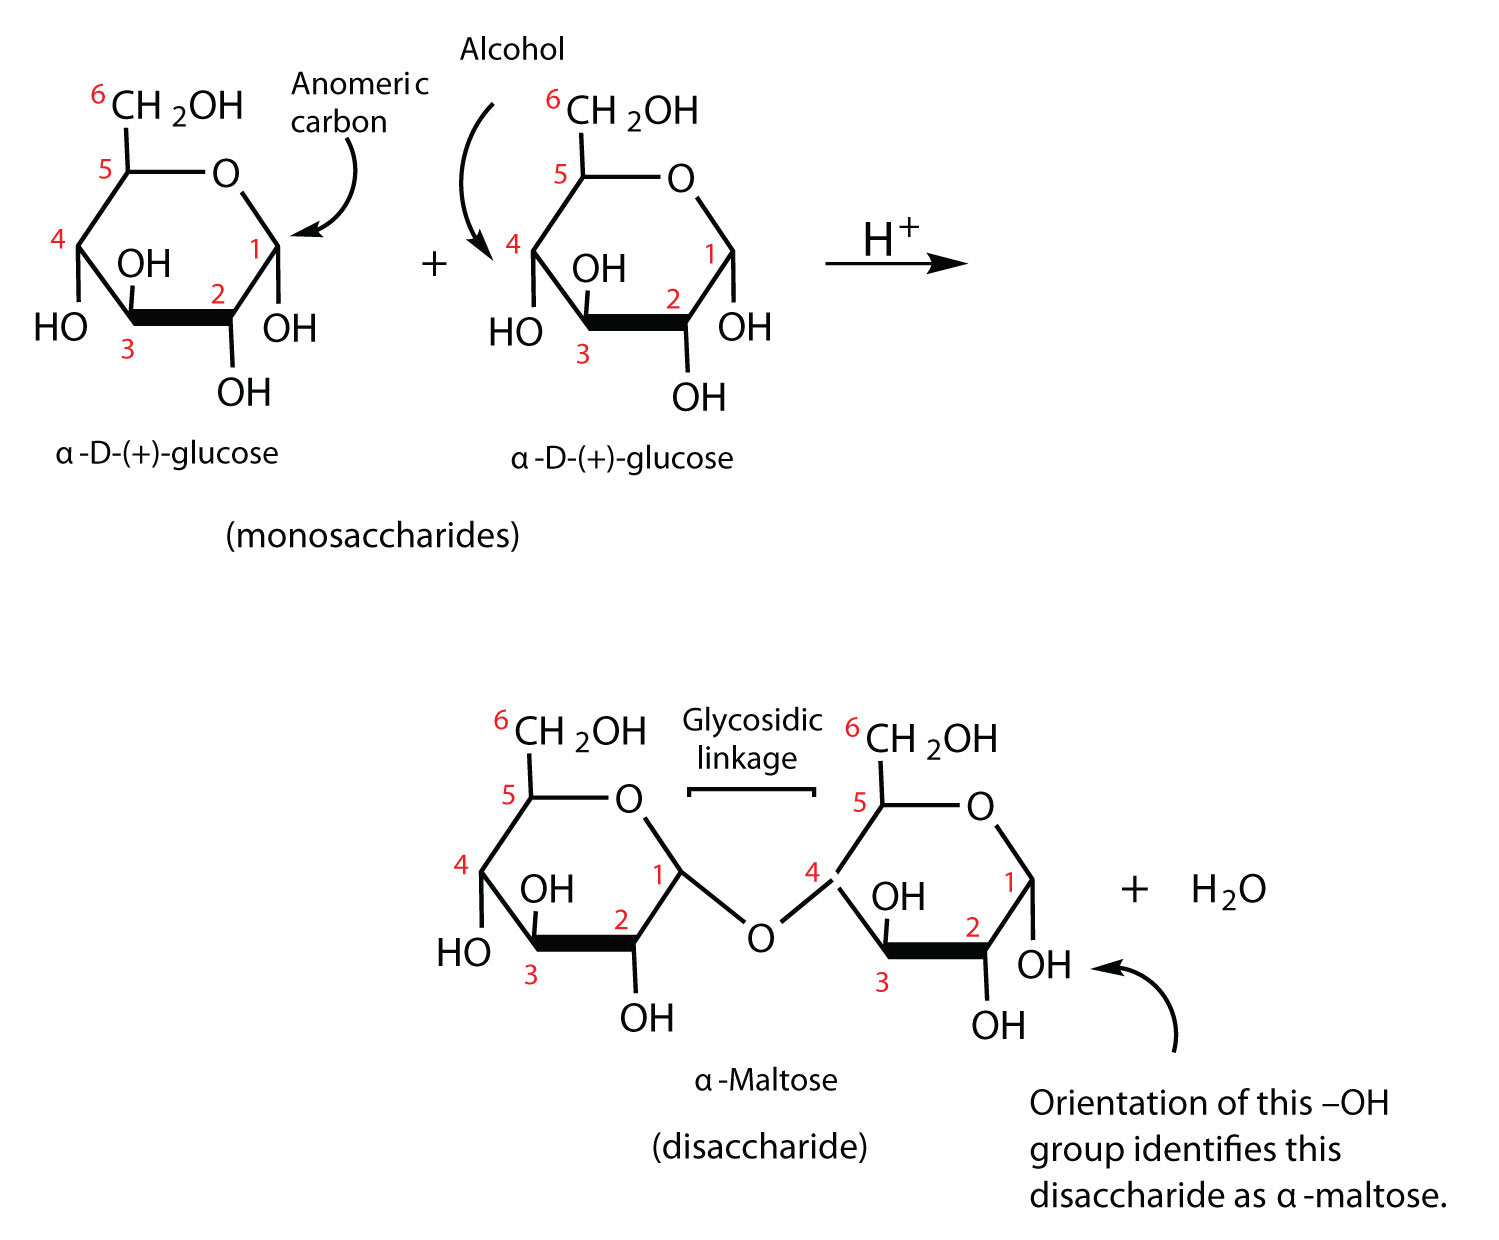 wht are the major monosaccharide found in the body What is the major monosaccharide found in the body - 5927470.